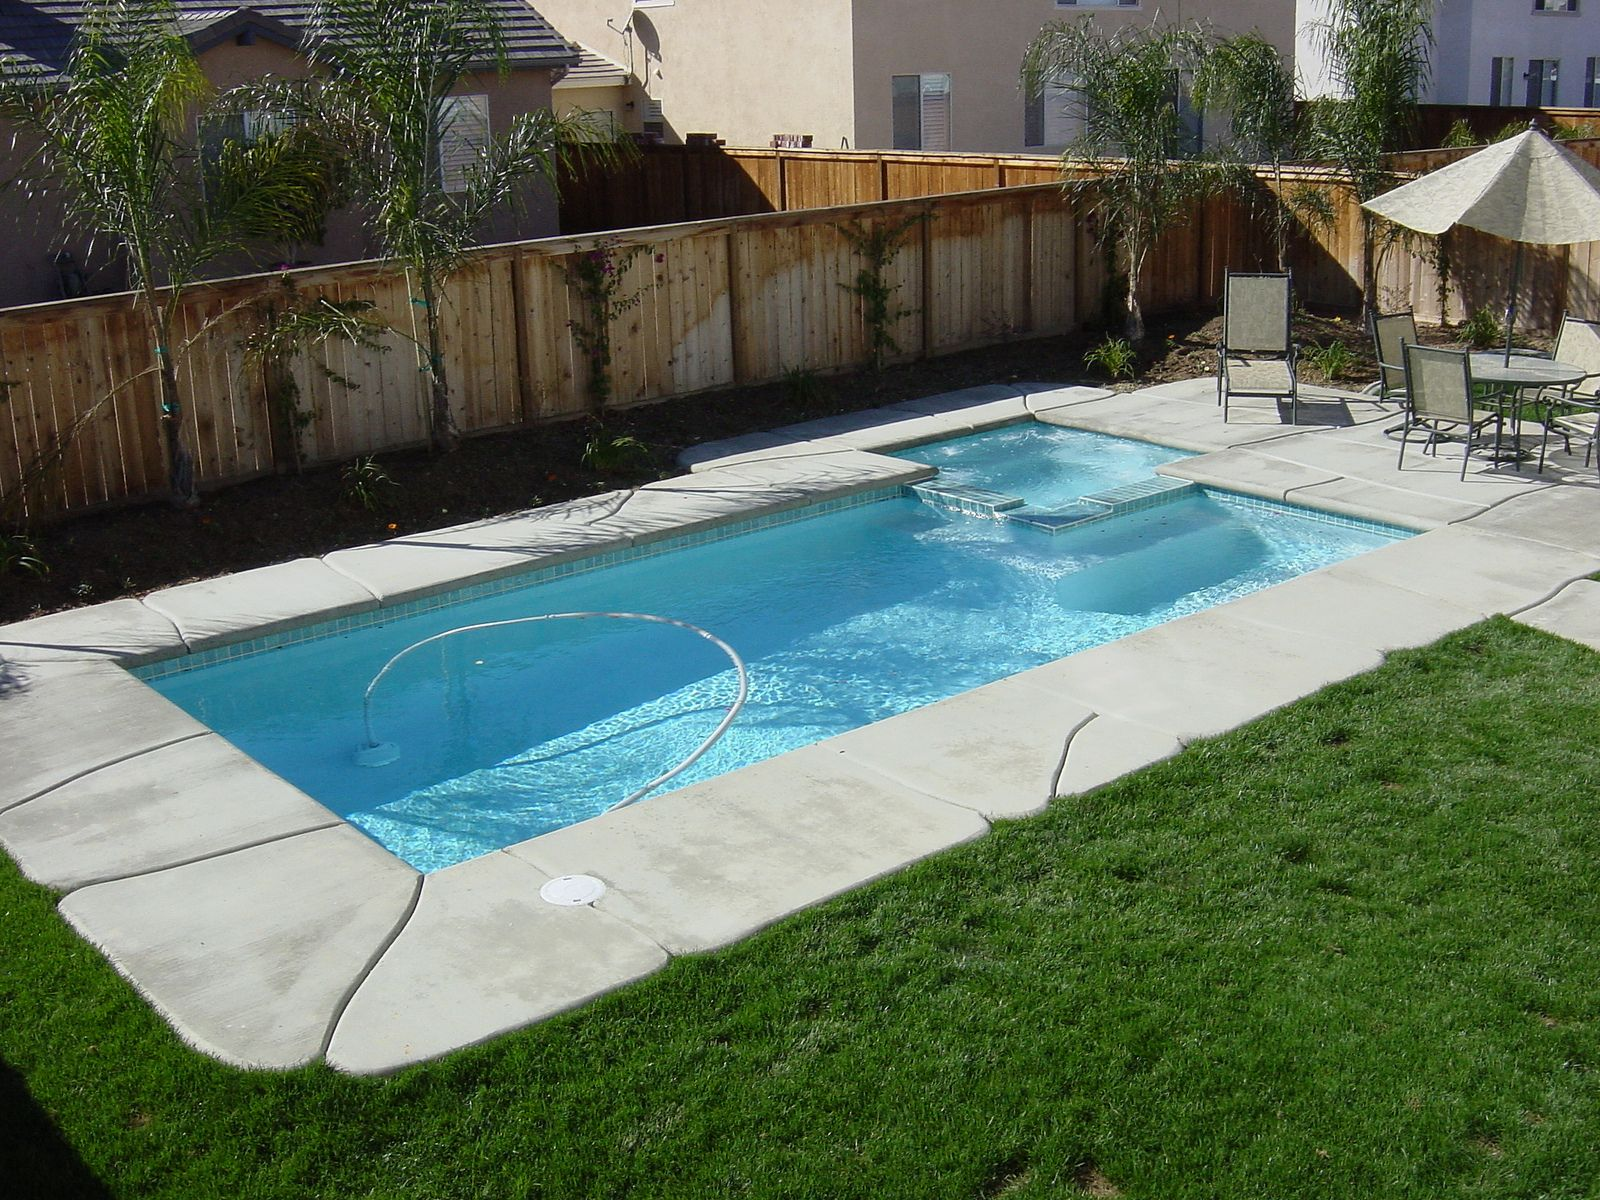 Swiming pools swimming pool design with outdoor umbrella design also stainless patio chair and - Pool patio design ...